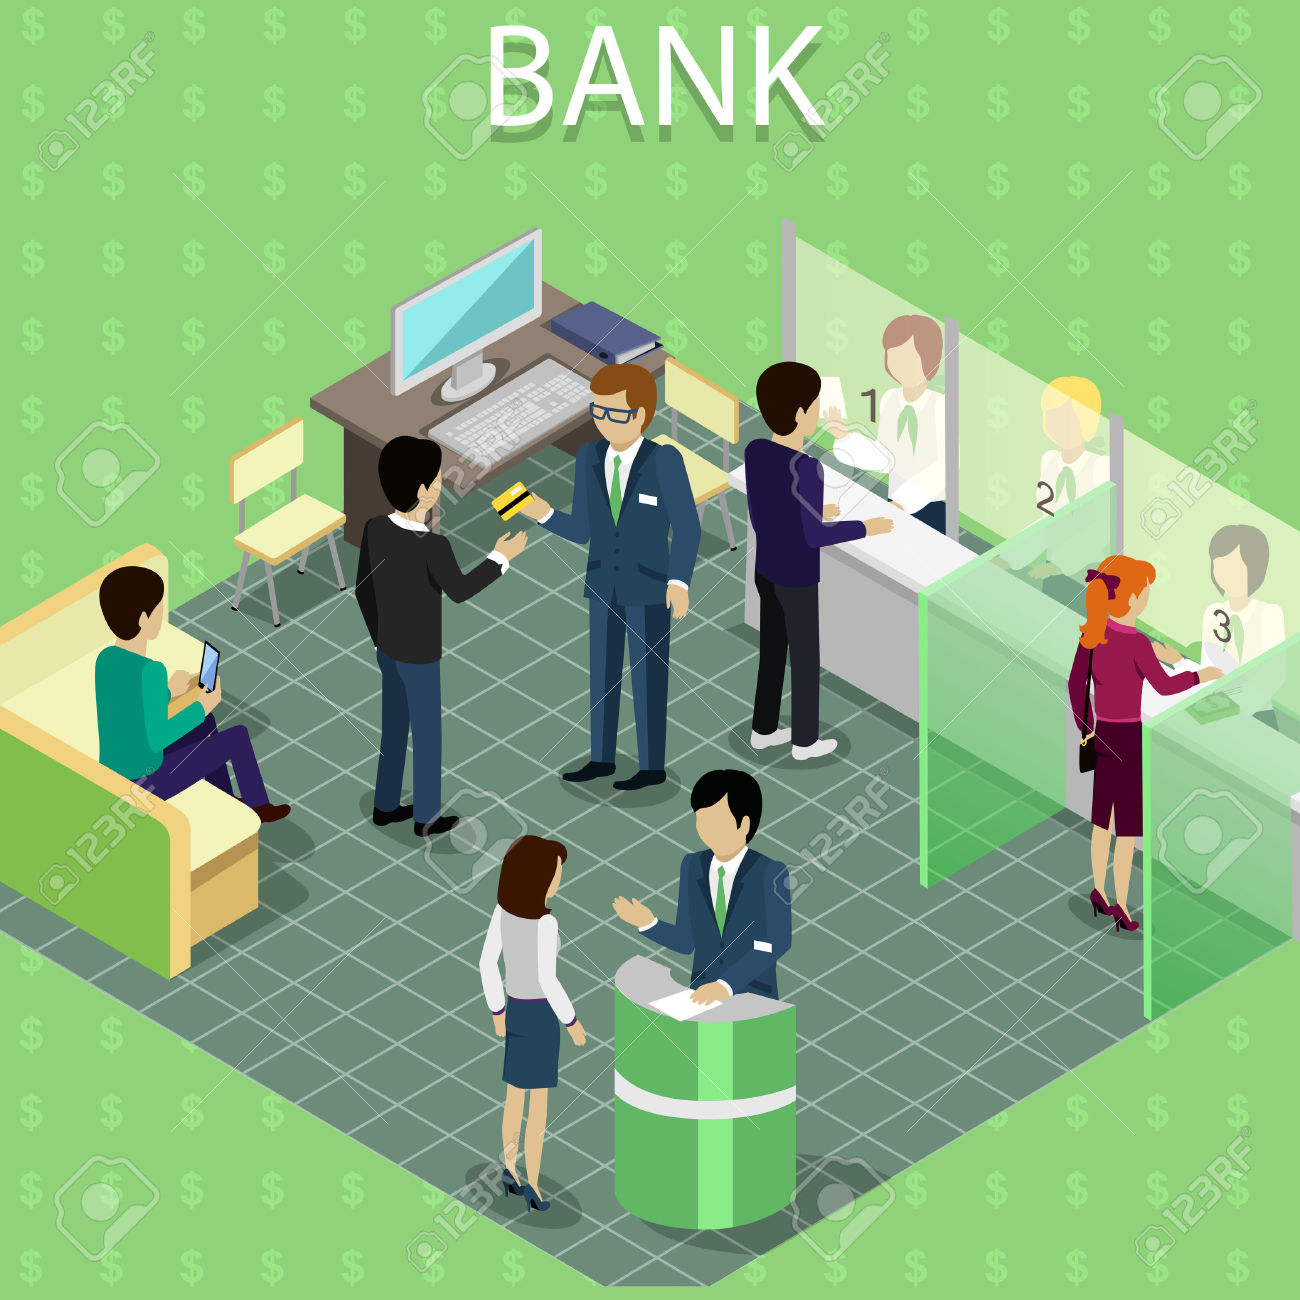 Bank customer service clipart graphic free download 289,976 Bank Stock Vector Illustration And Royalty Free Bank Clipart graphic free download